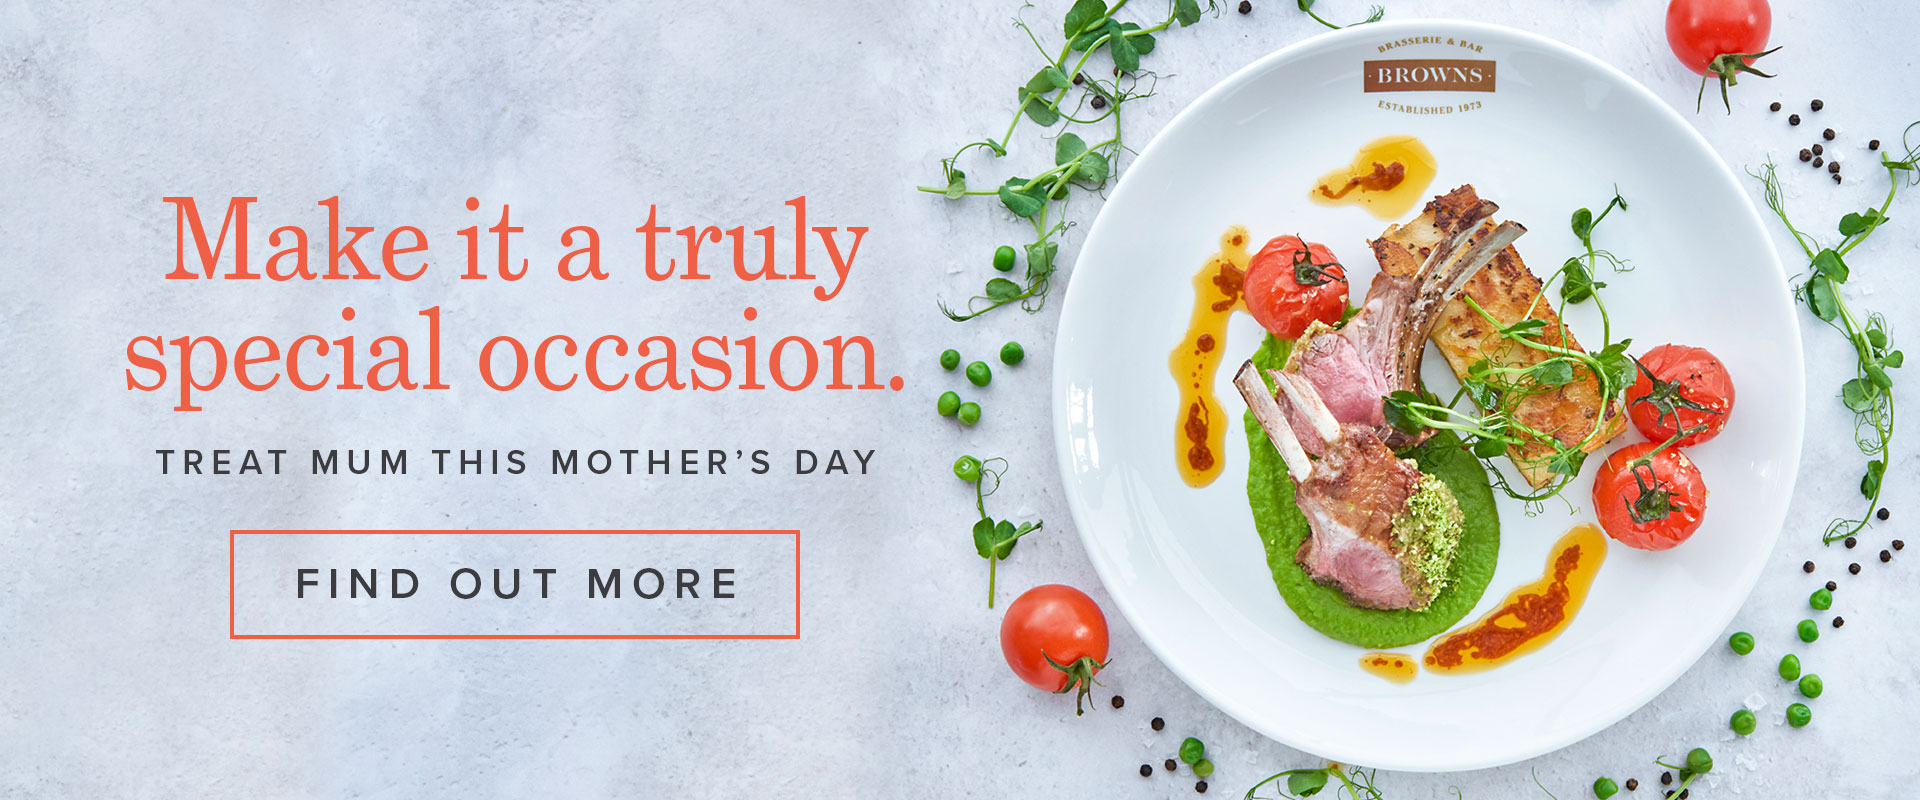 Mother's Day 2019 at Browns Kingston